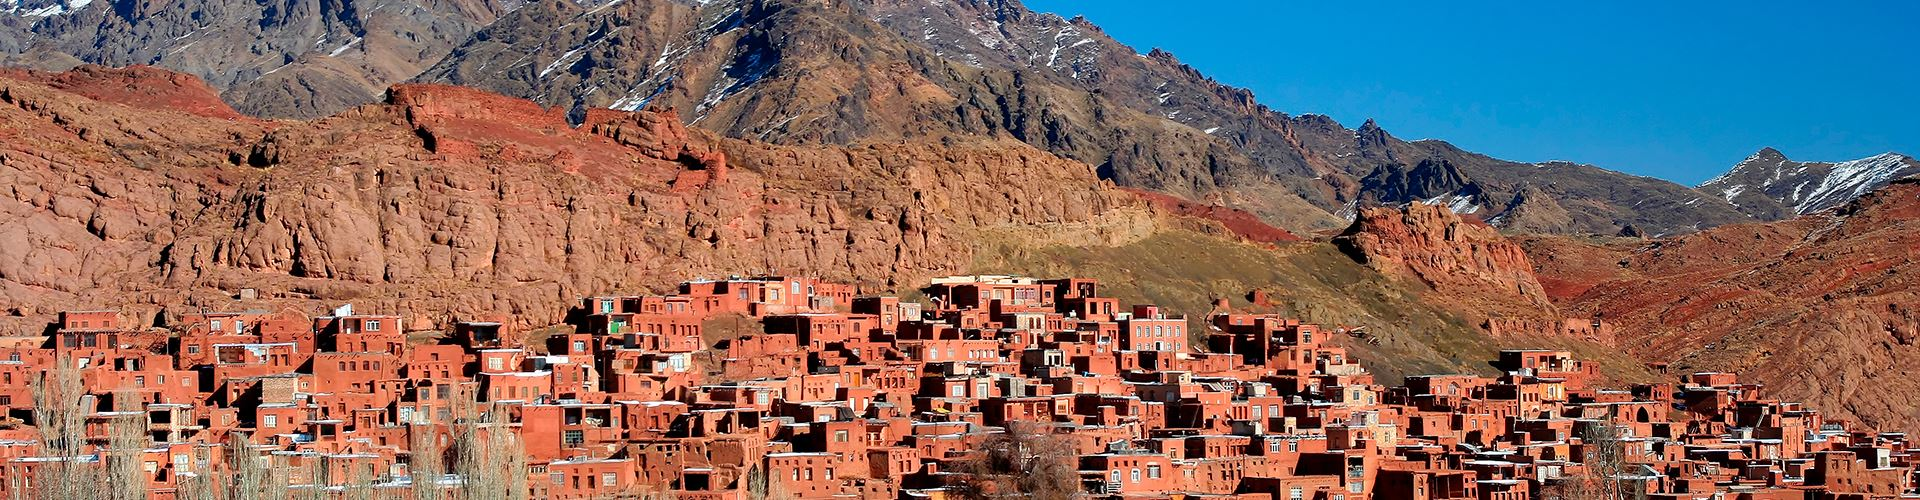 Mountain-village-Abyaneh-in-central-part-of-Iran.jpg